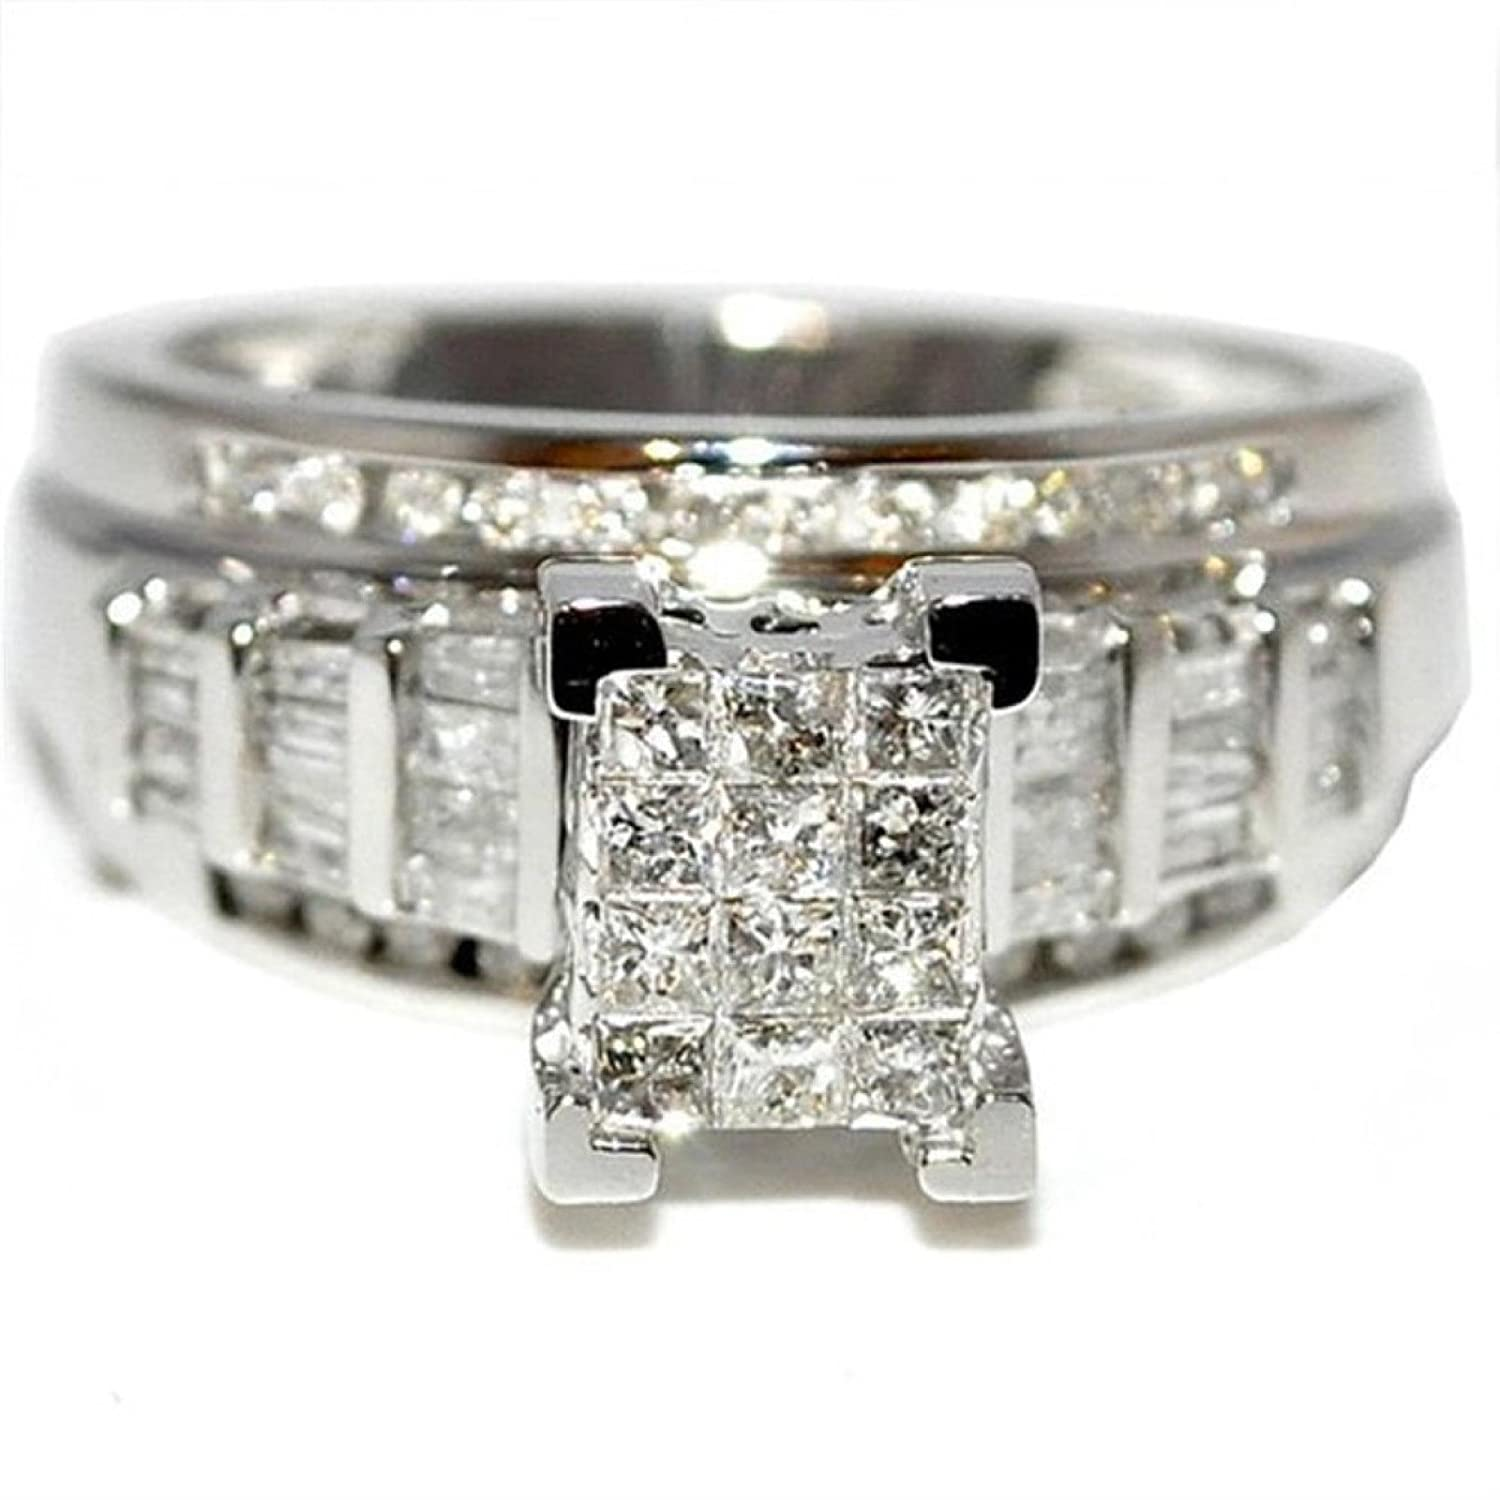 Princess Cut Diamond Wedding Ring 3 In 1 Engagement Bands White Gold 9ct Real